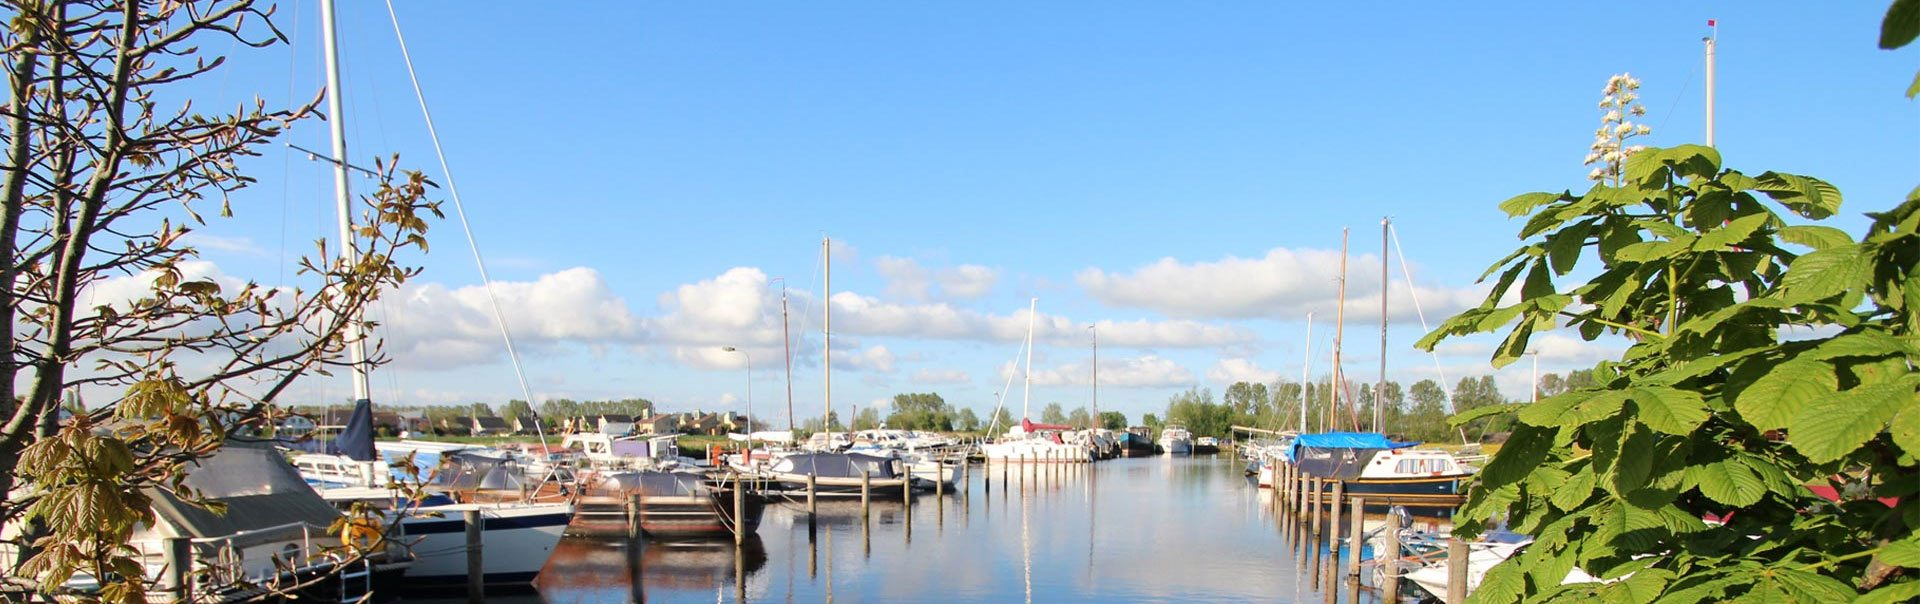 jachthaven-sneek-haven